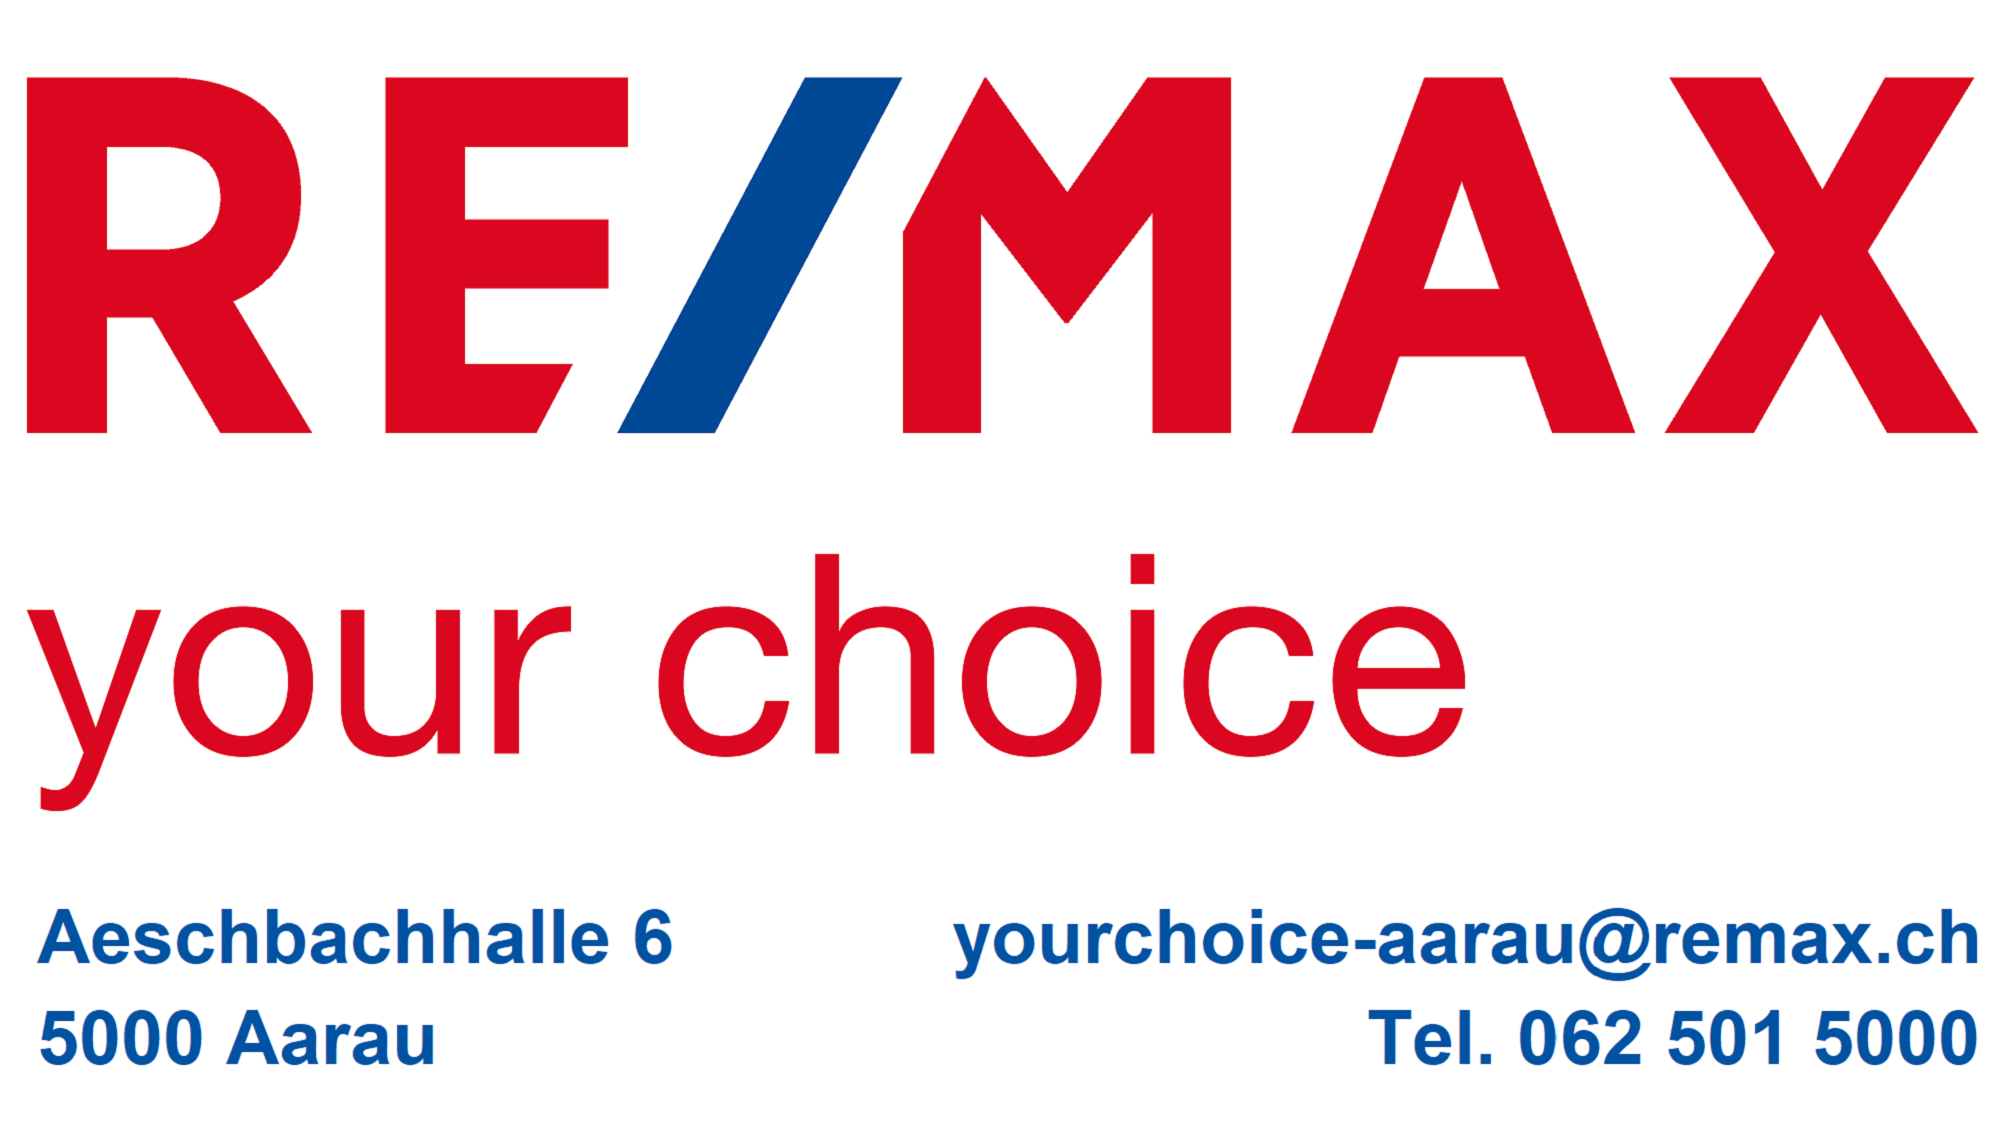 Logo RE/MAX your choice - Aarau